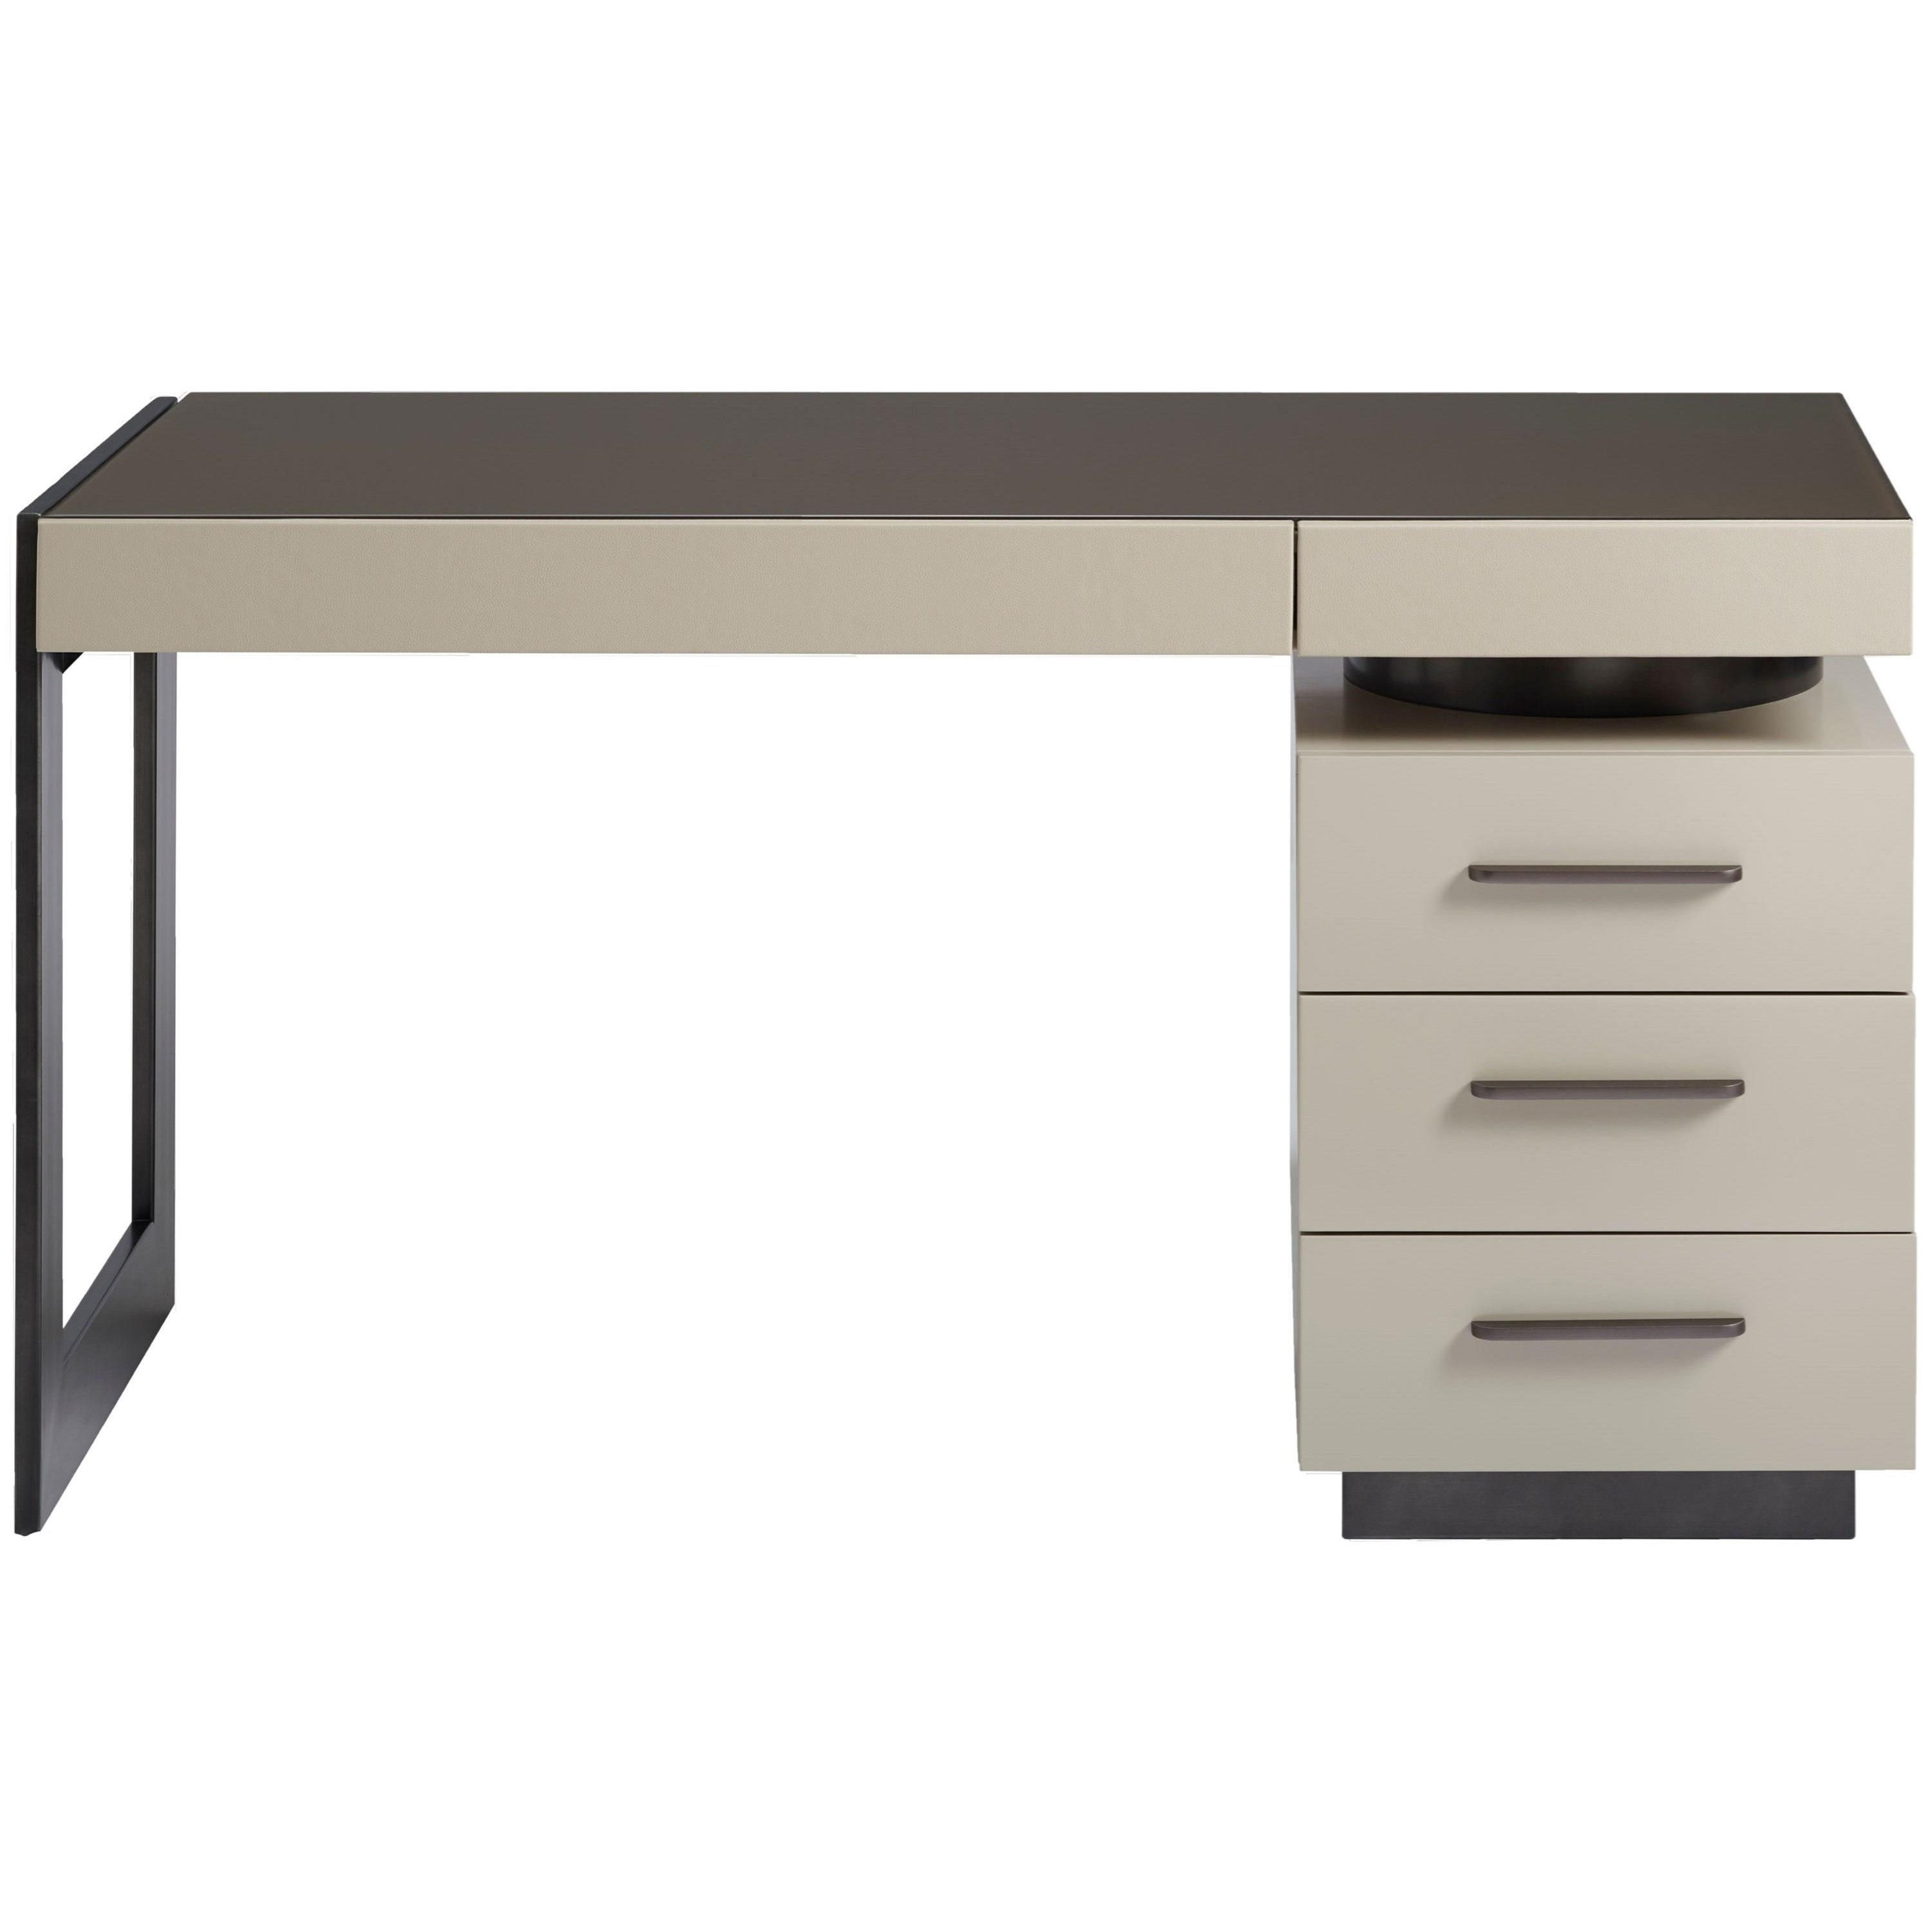 Nina Magon 941 DuChamps Writing Desk by Universal at Baer's Furniture